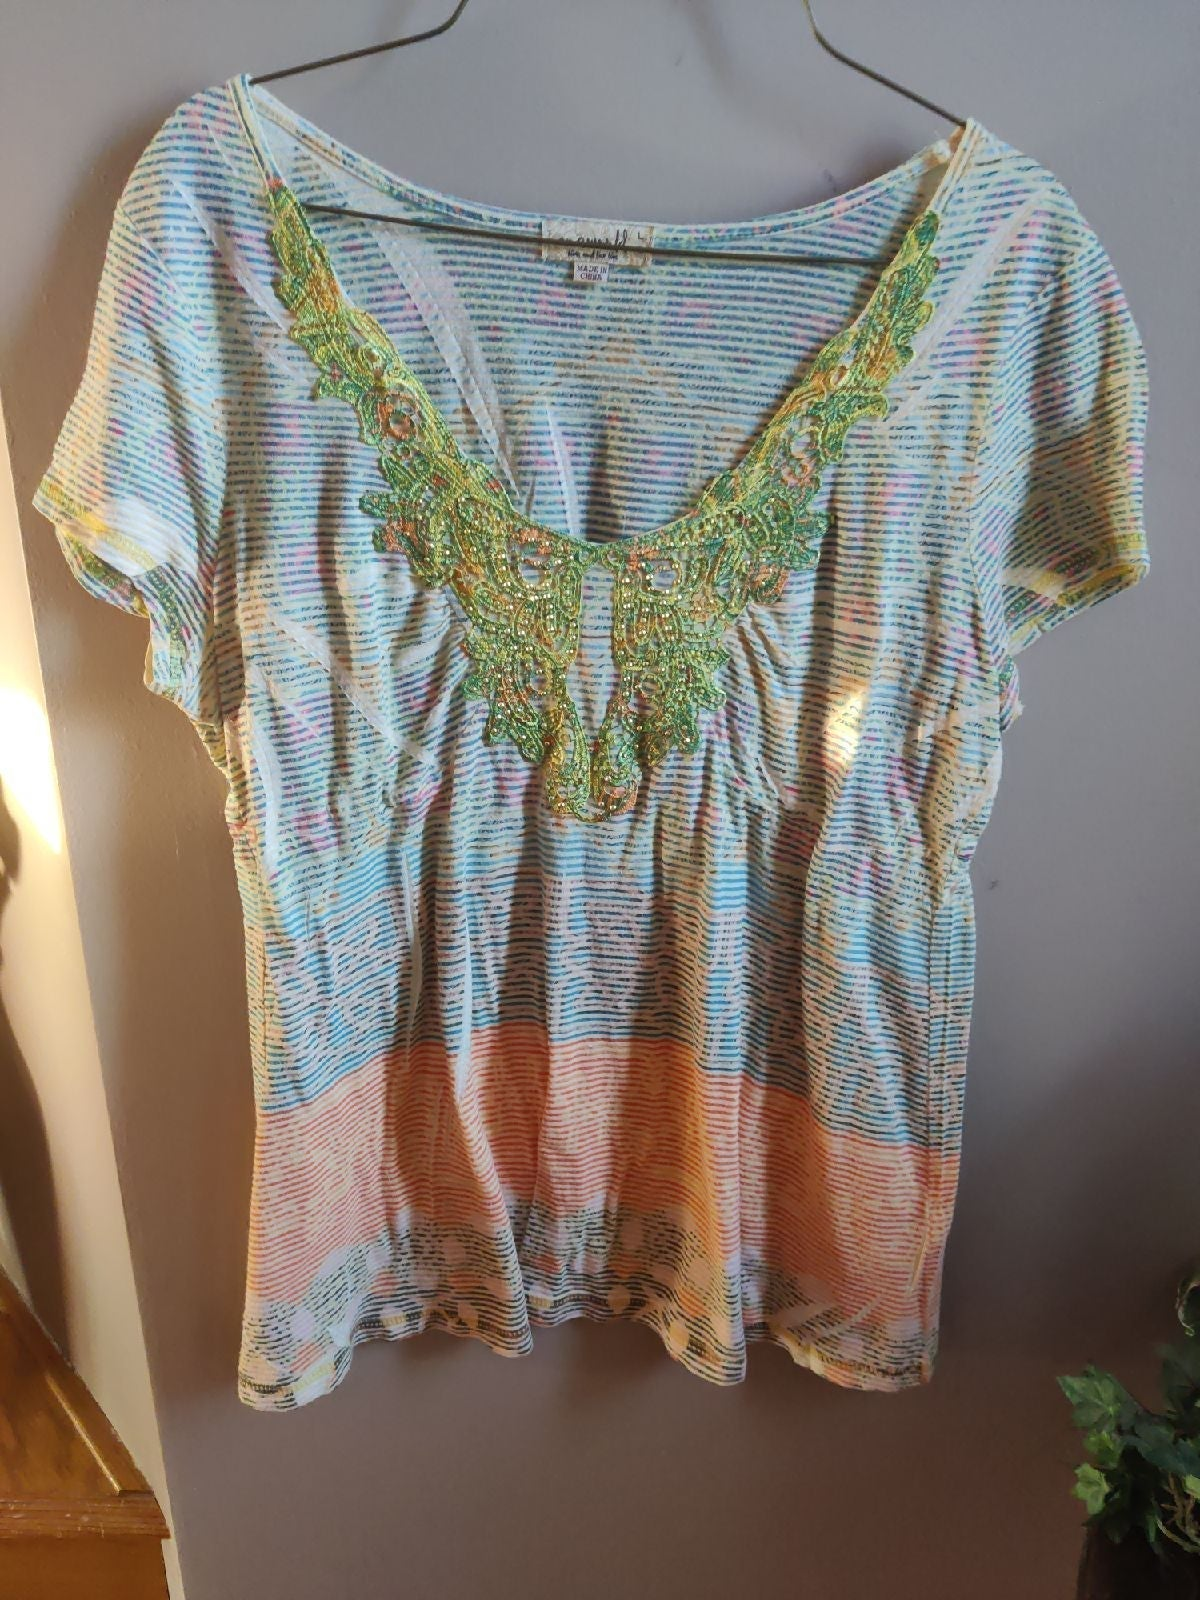 NEW One World Striped & Beaded Top Sz L